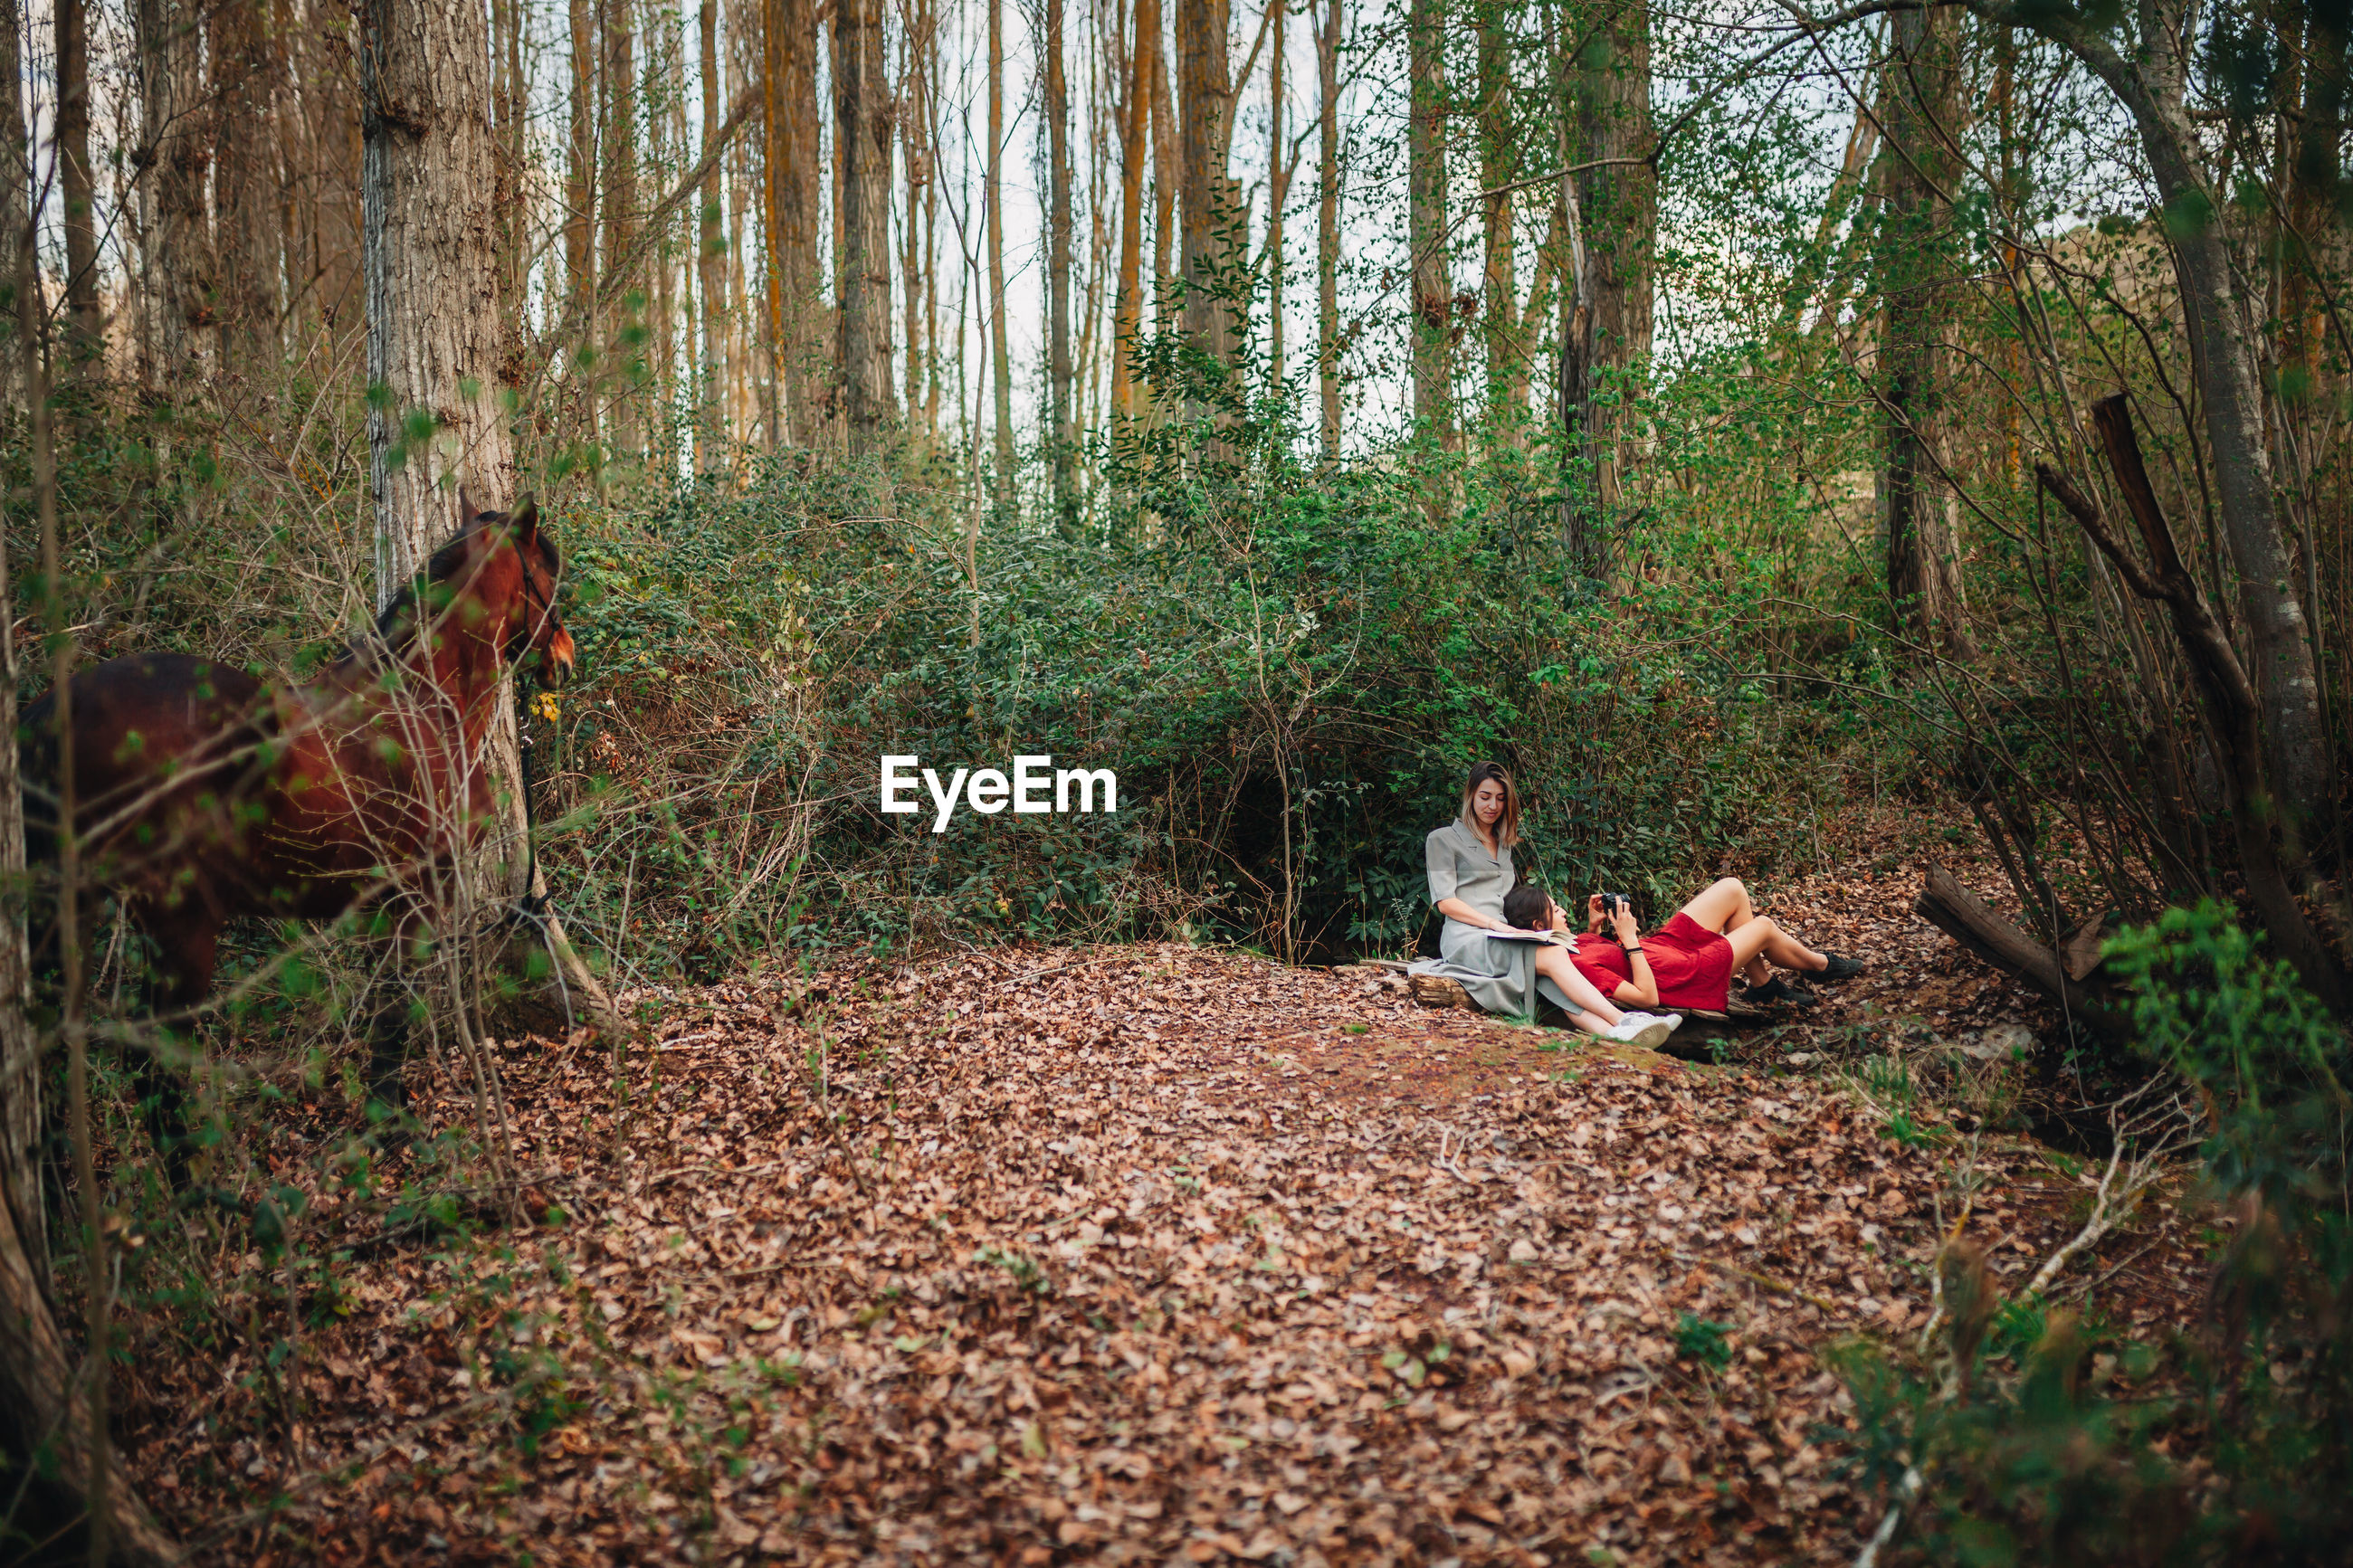 Woman reading book while friend photographing in forest